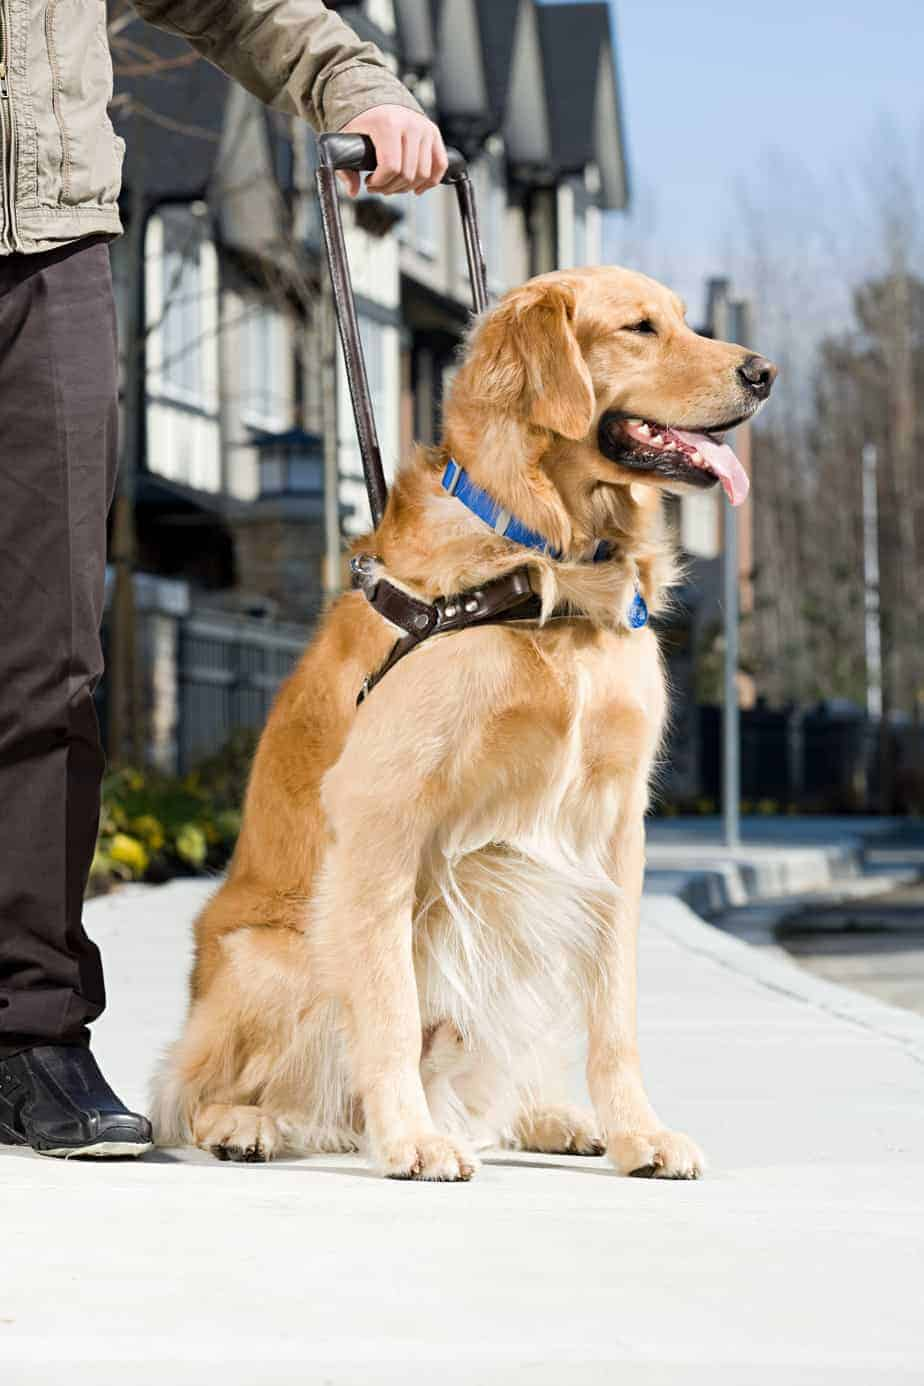 Unlike emotional support pets, service dogs are individually trained to perform tasks such as lead people who are blind.